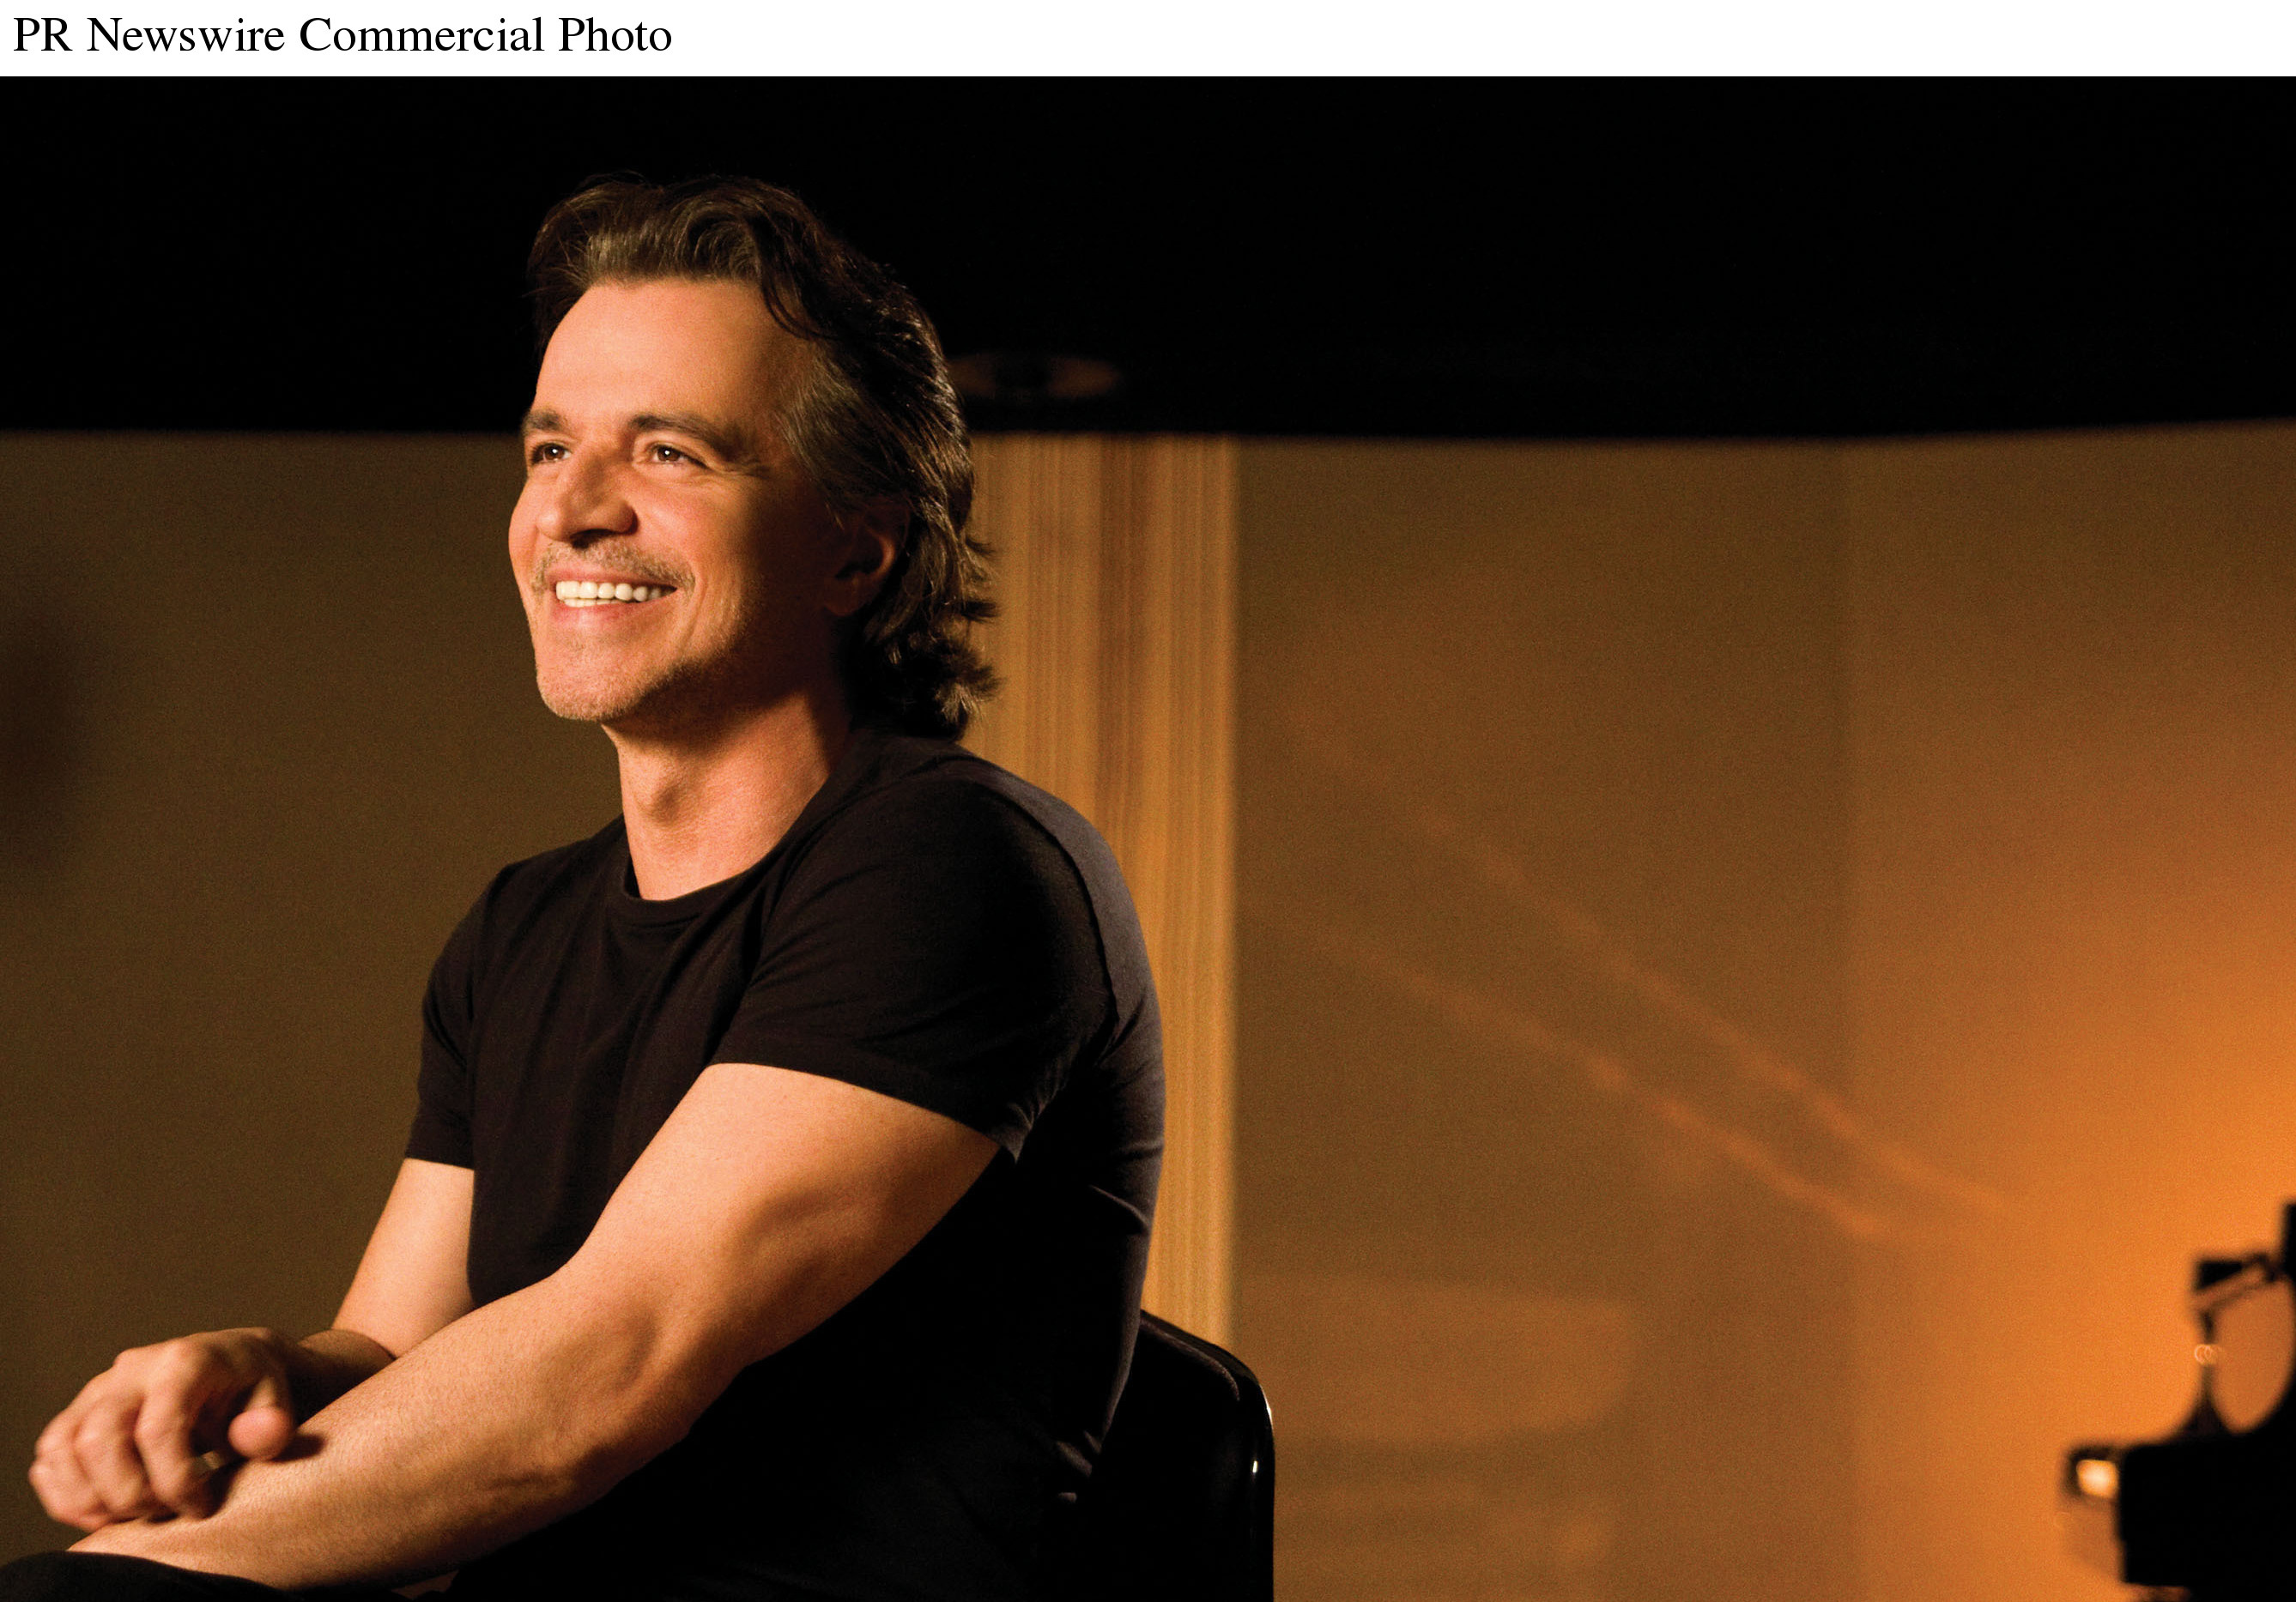 Yanni arrives full of surprises | The Spokesman-Review